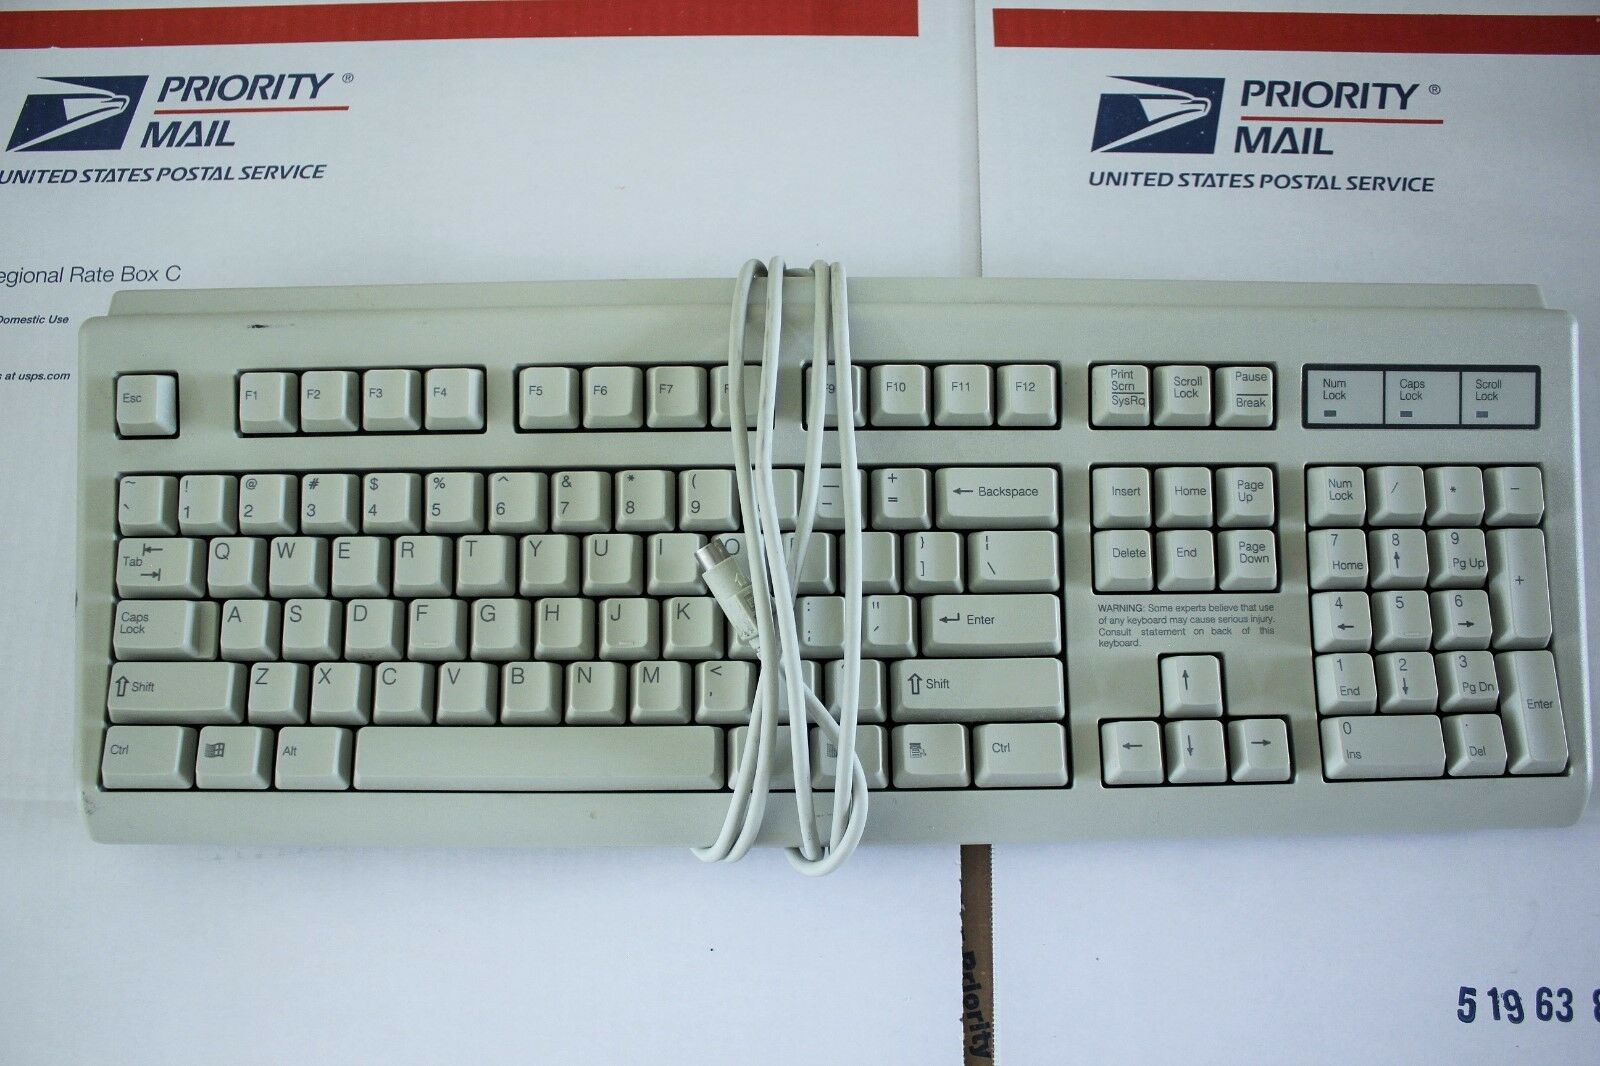 Original Microsoft Rt5156tw 125998-001 Keyboard Model Wired Ps/2 ...